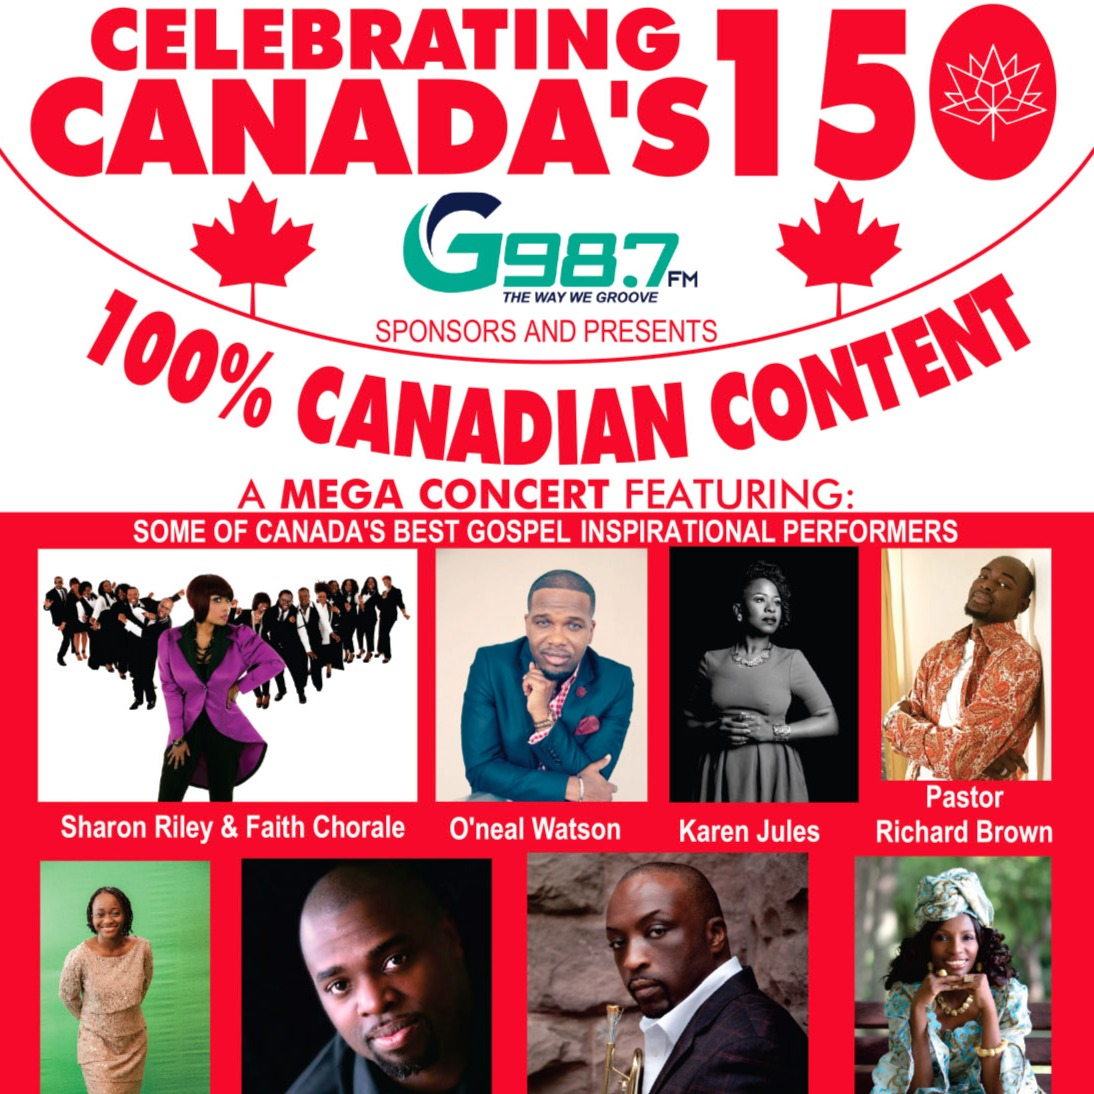 Celebrating Canada's  150 G987fm sponsor & presents a mega concert